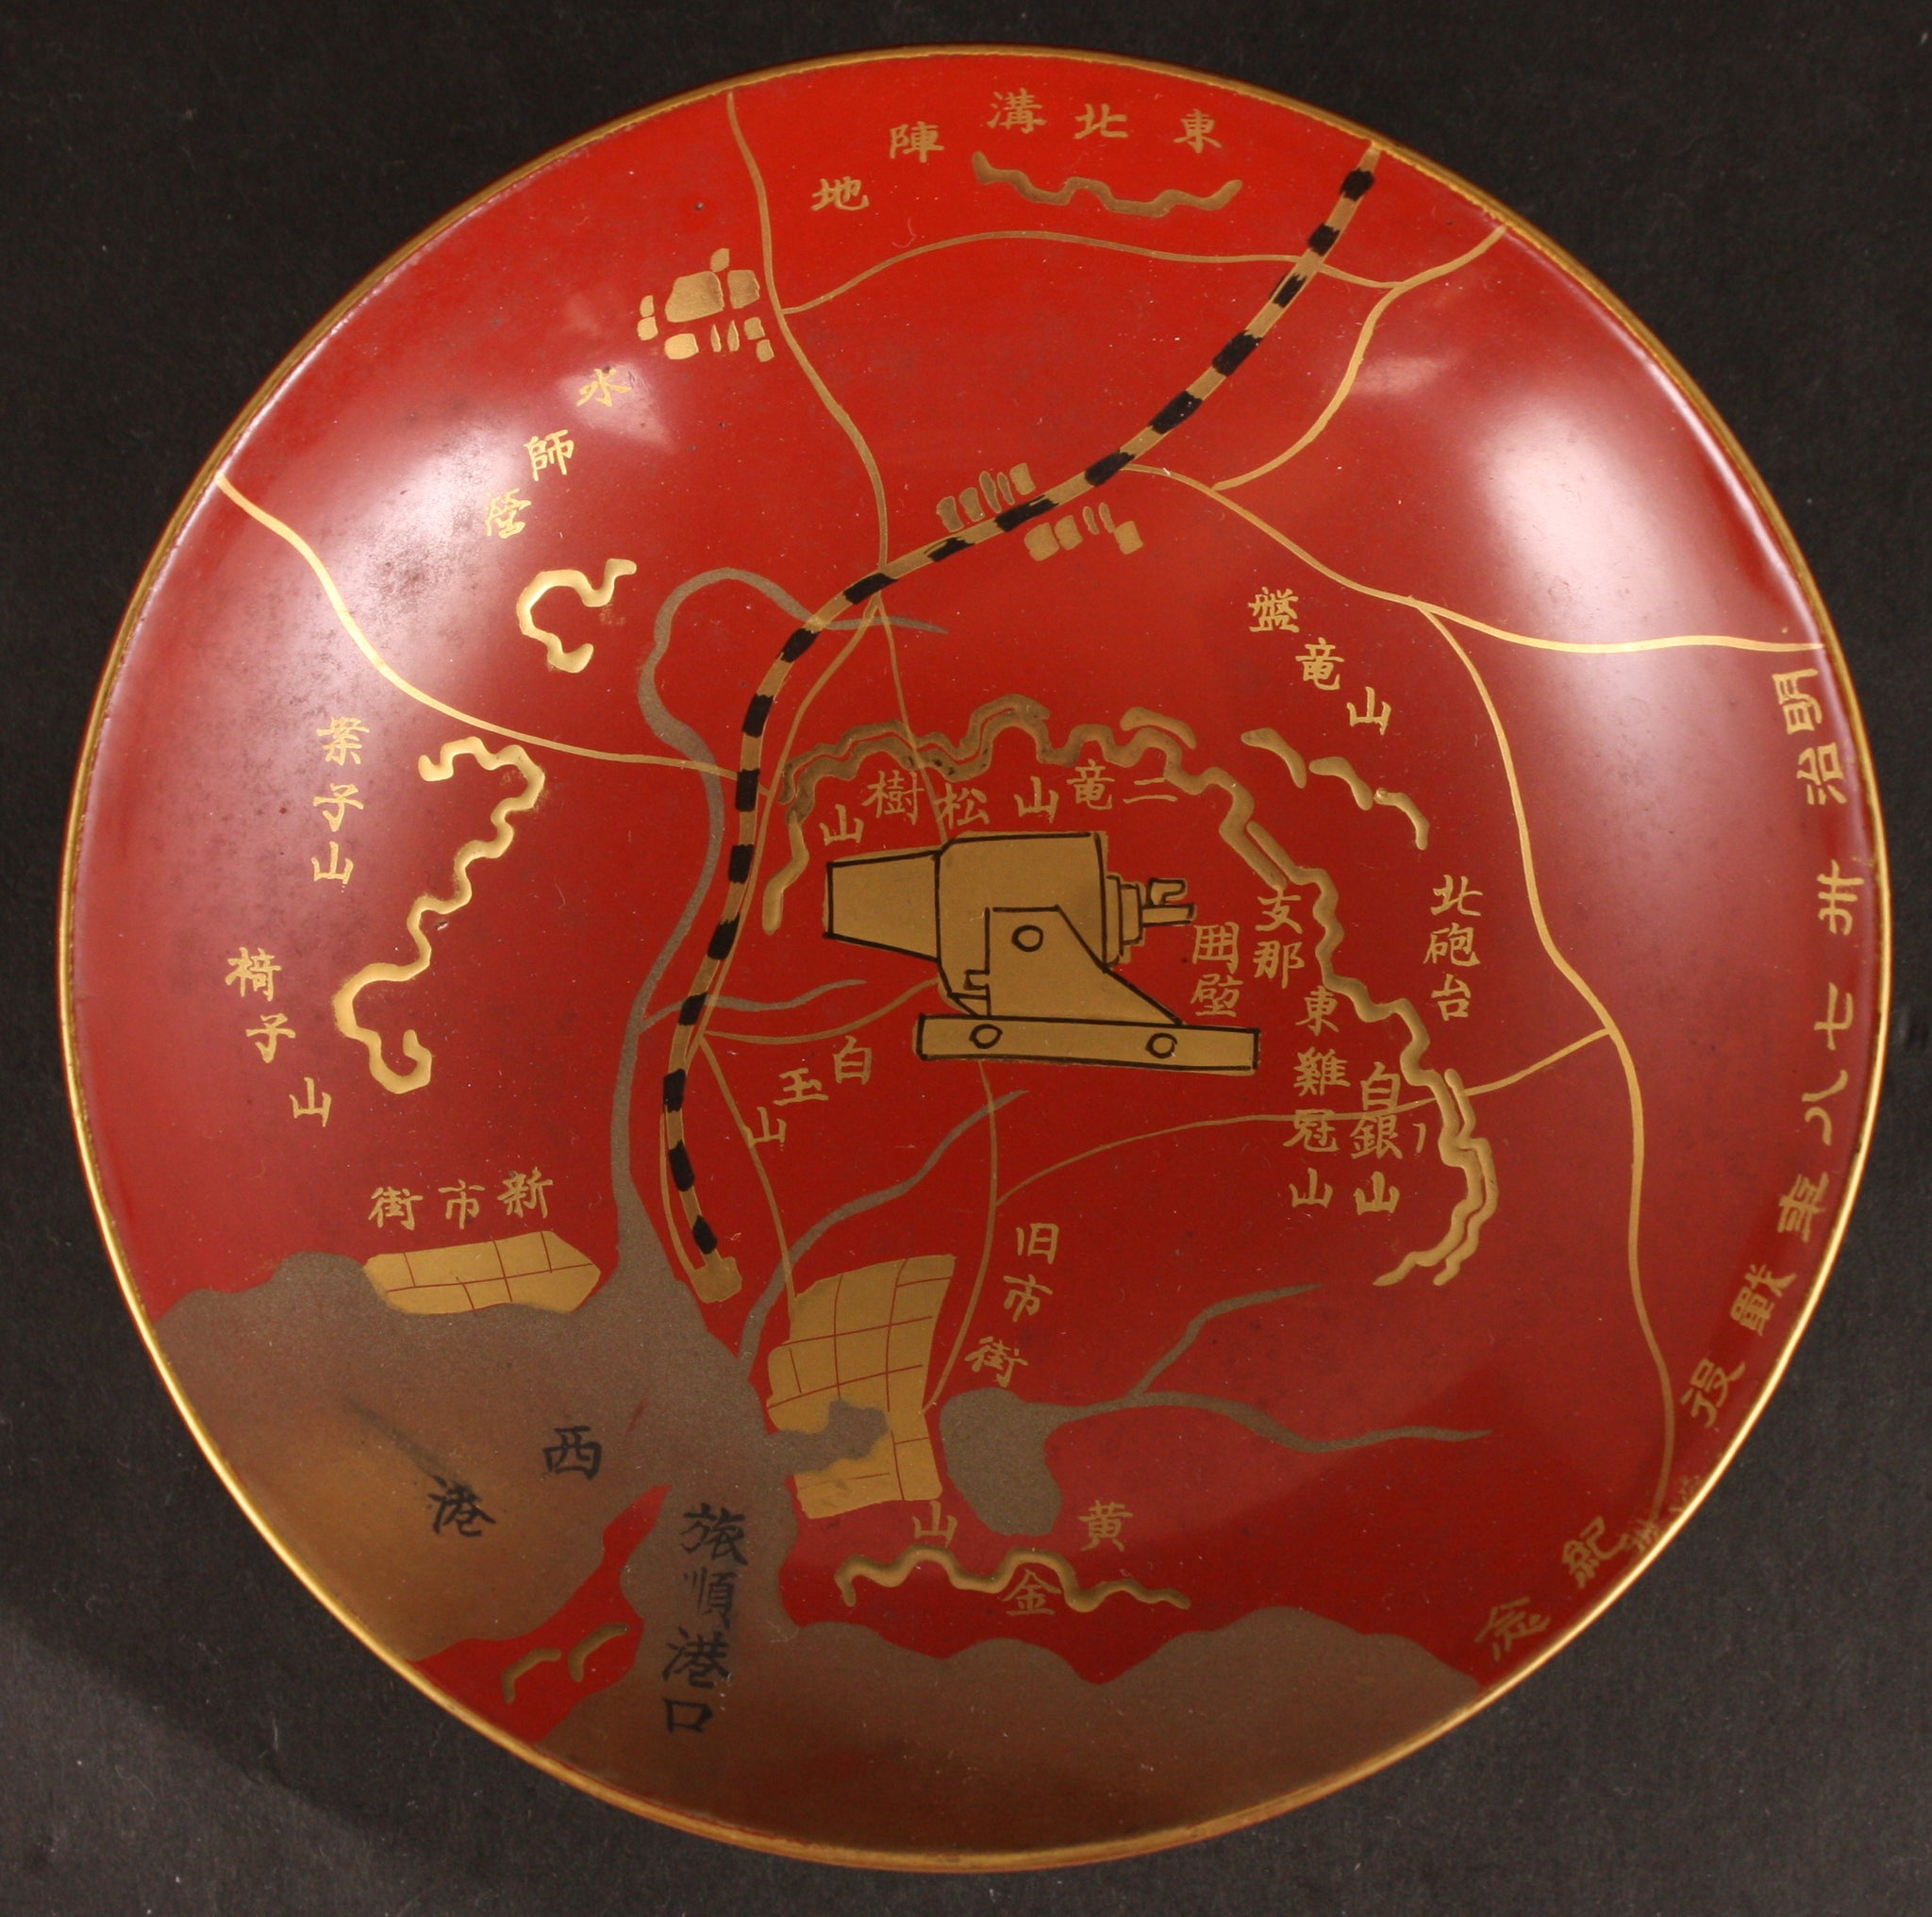 Rare Russo Japanese War Infantry Artillery Detailed Manchuria Map Lacquer Sake Cup